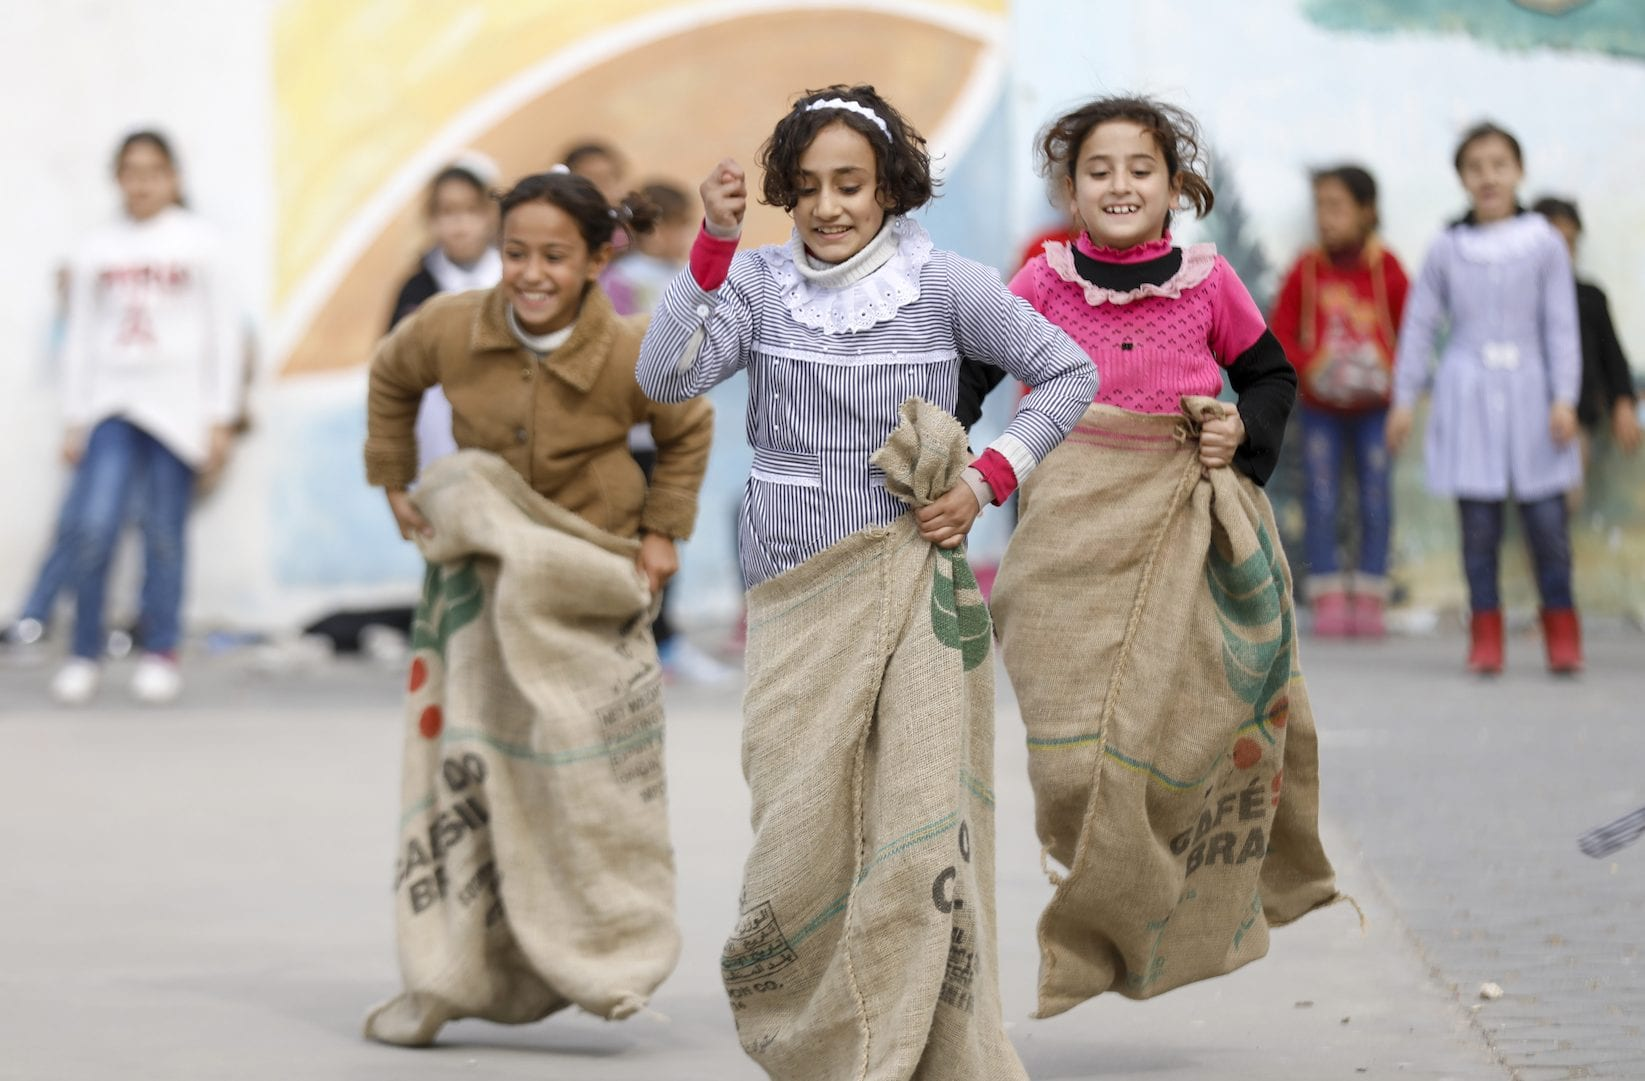 Join UNRWA USA's Relay Run for Refugees; it's going to be the Run of the Century!